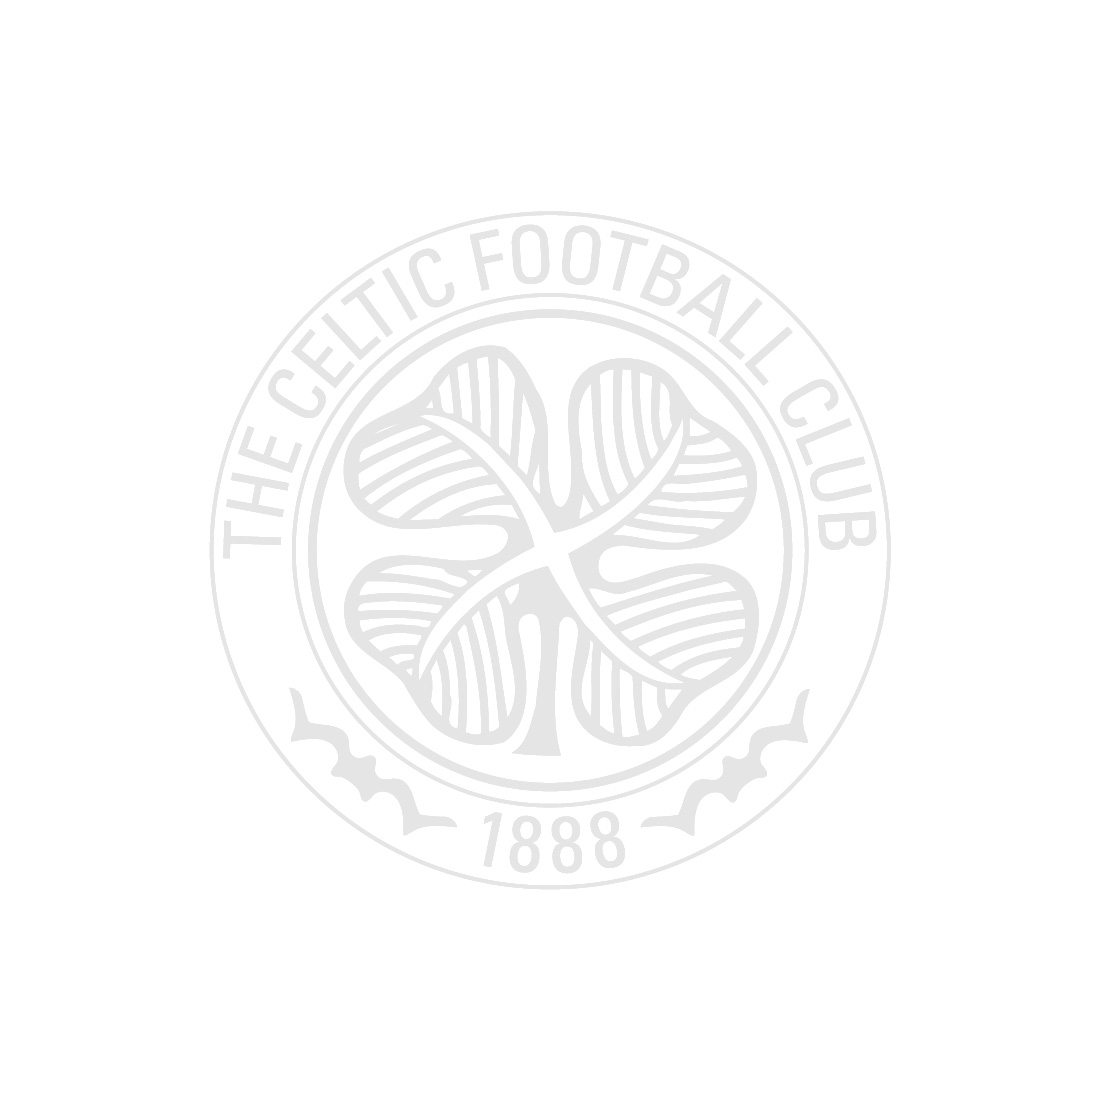 https://store.celticfc.net/media/catalog/product/cache/e198024799e315205e1fd5ab9bbf5918/P/7/P7142-74-0-001_9.jpg